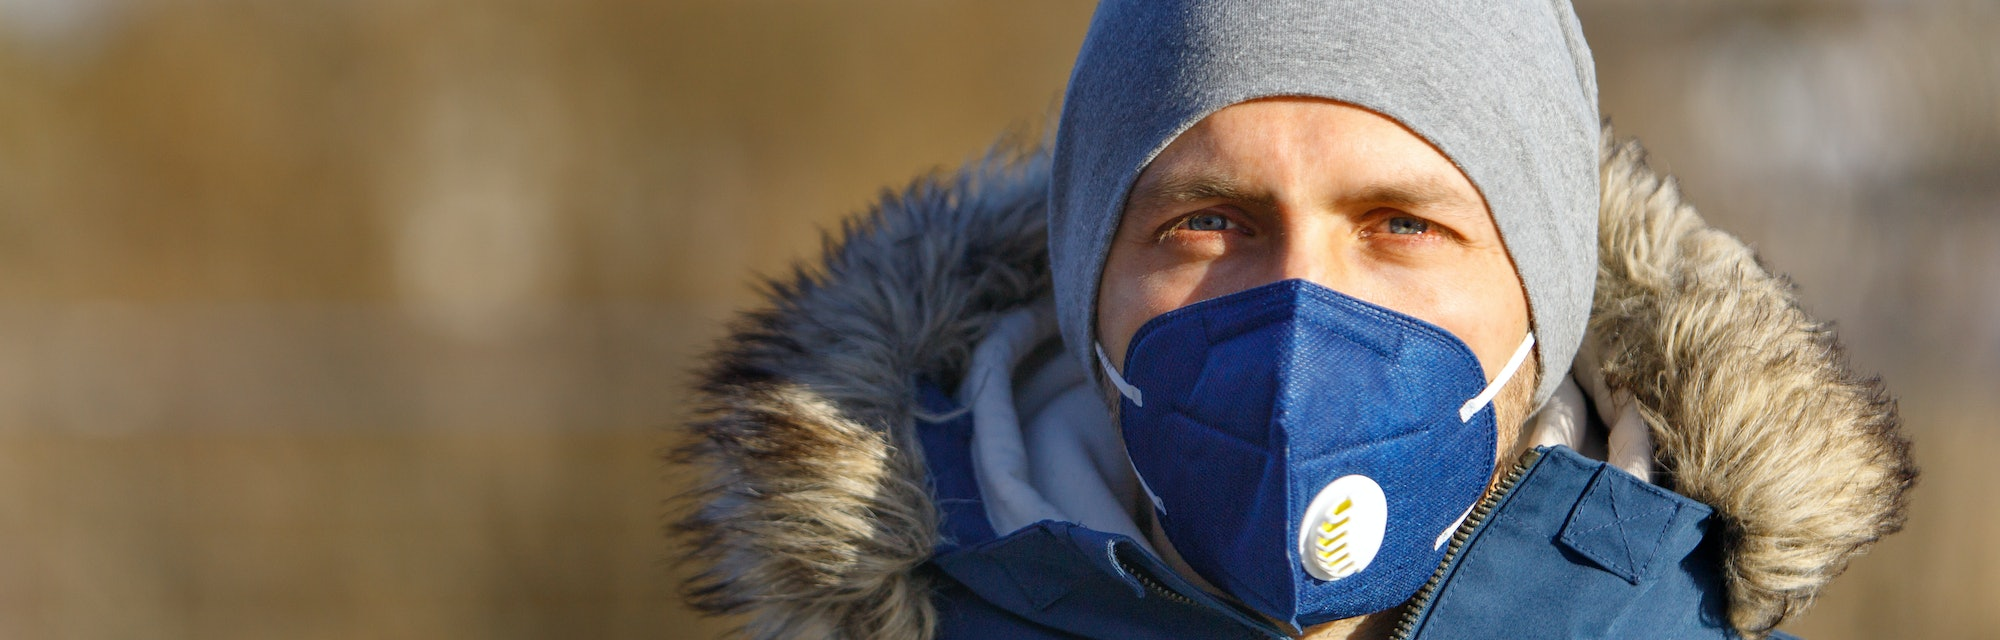 Man wearing a mask and warm clothing.